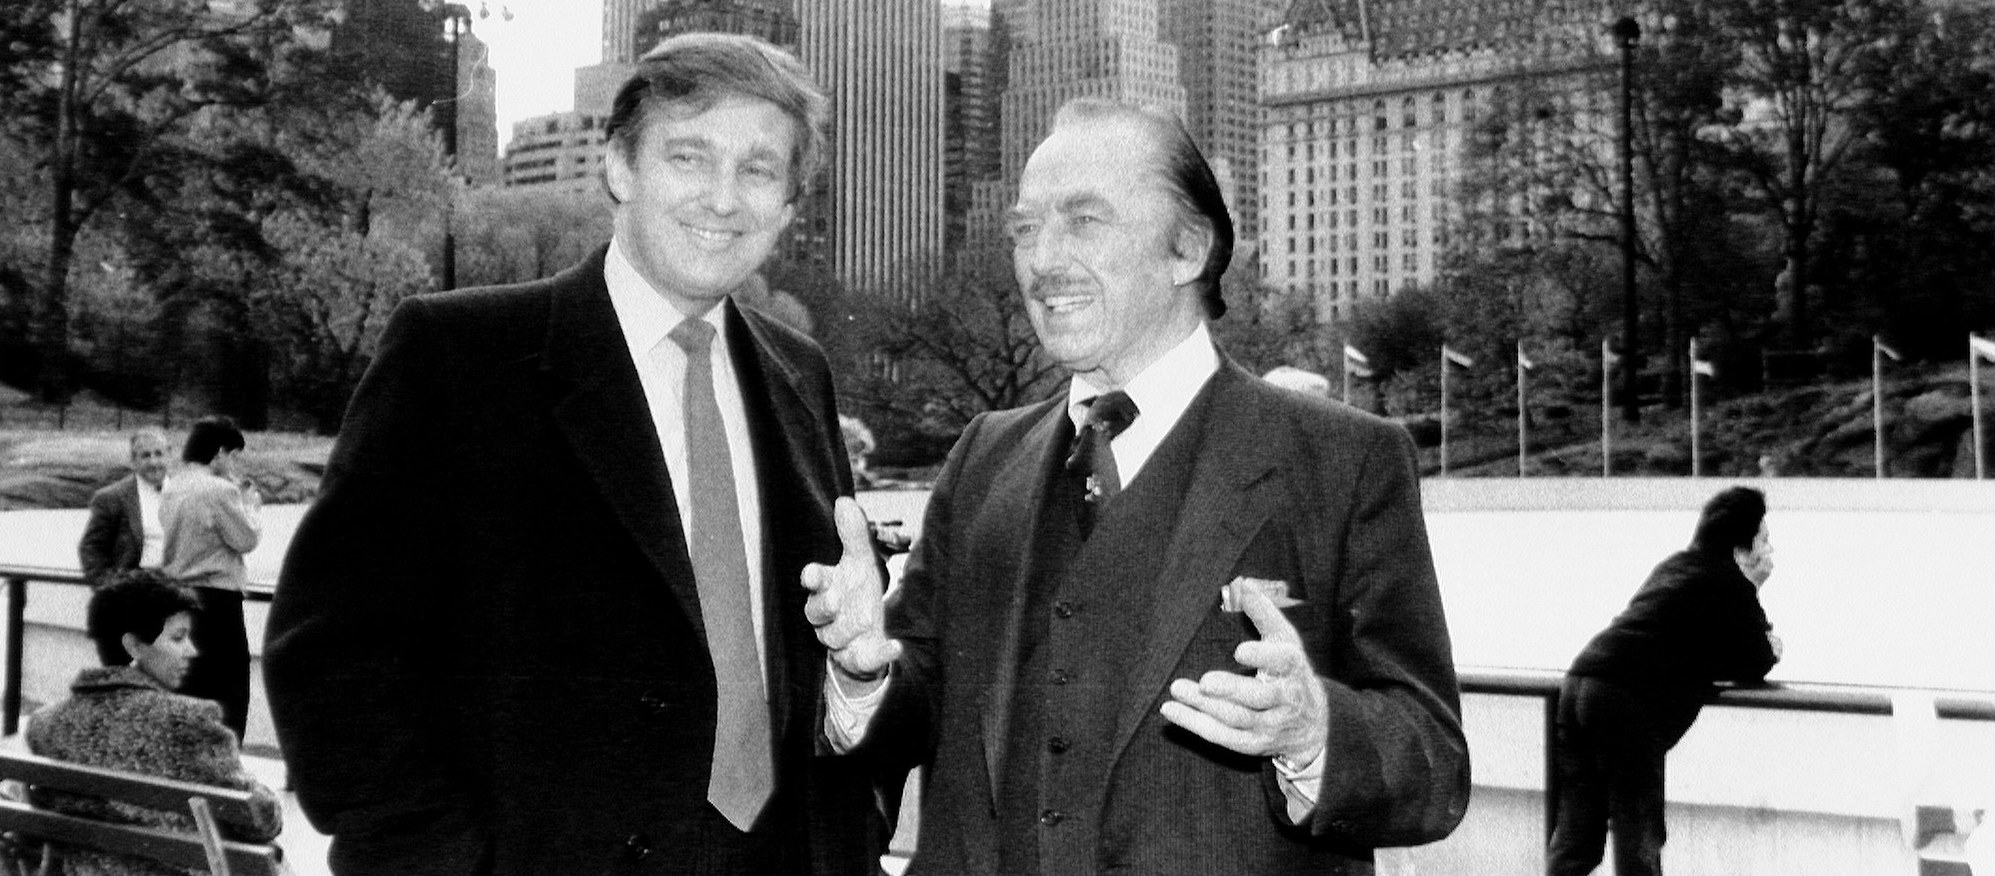 Donald Trump with his father, Fred, in New York City ( Image )